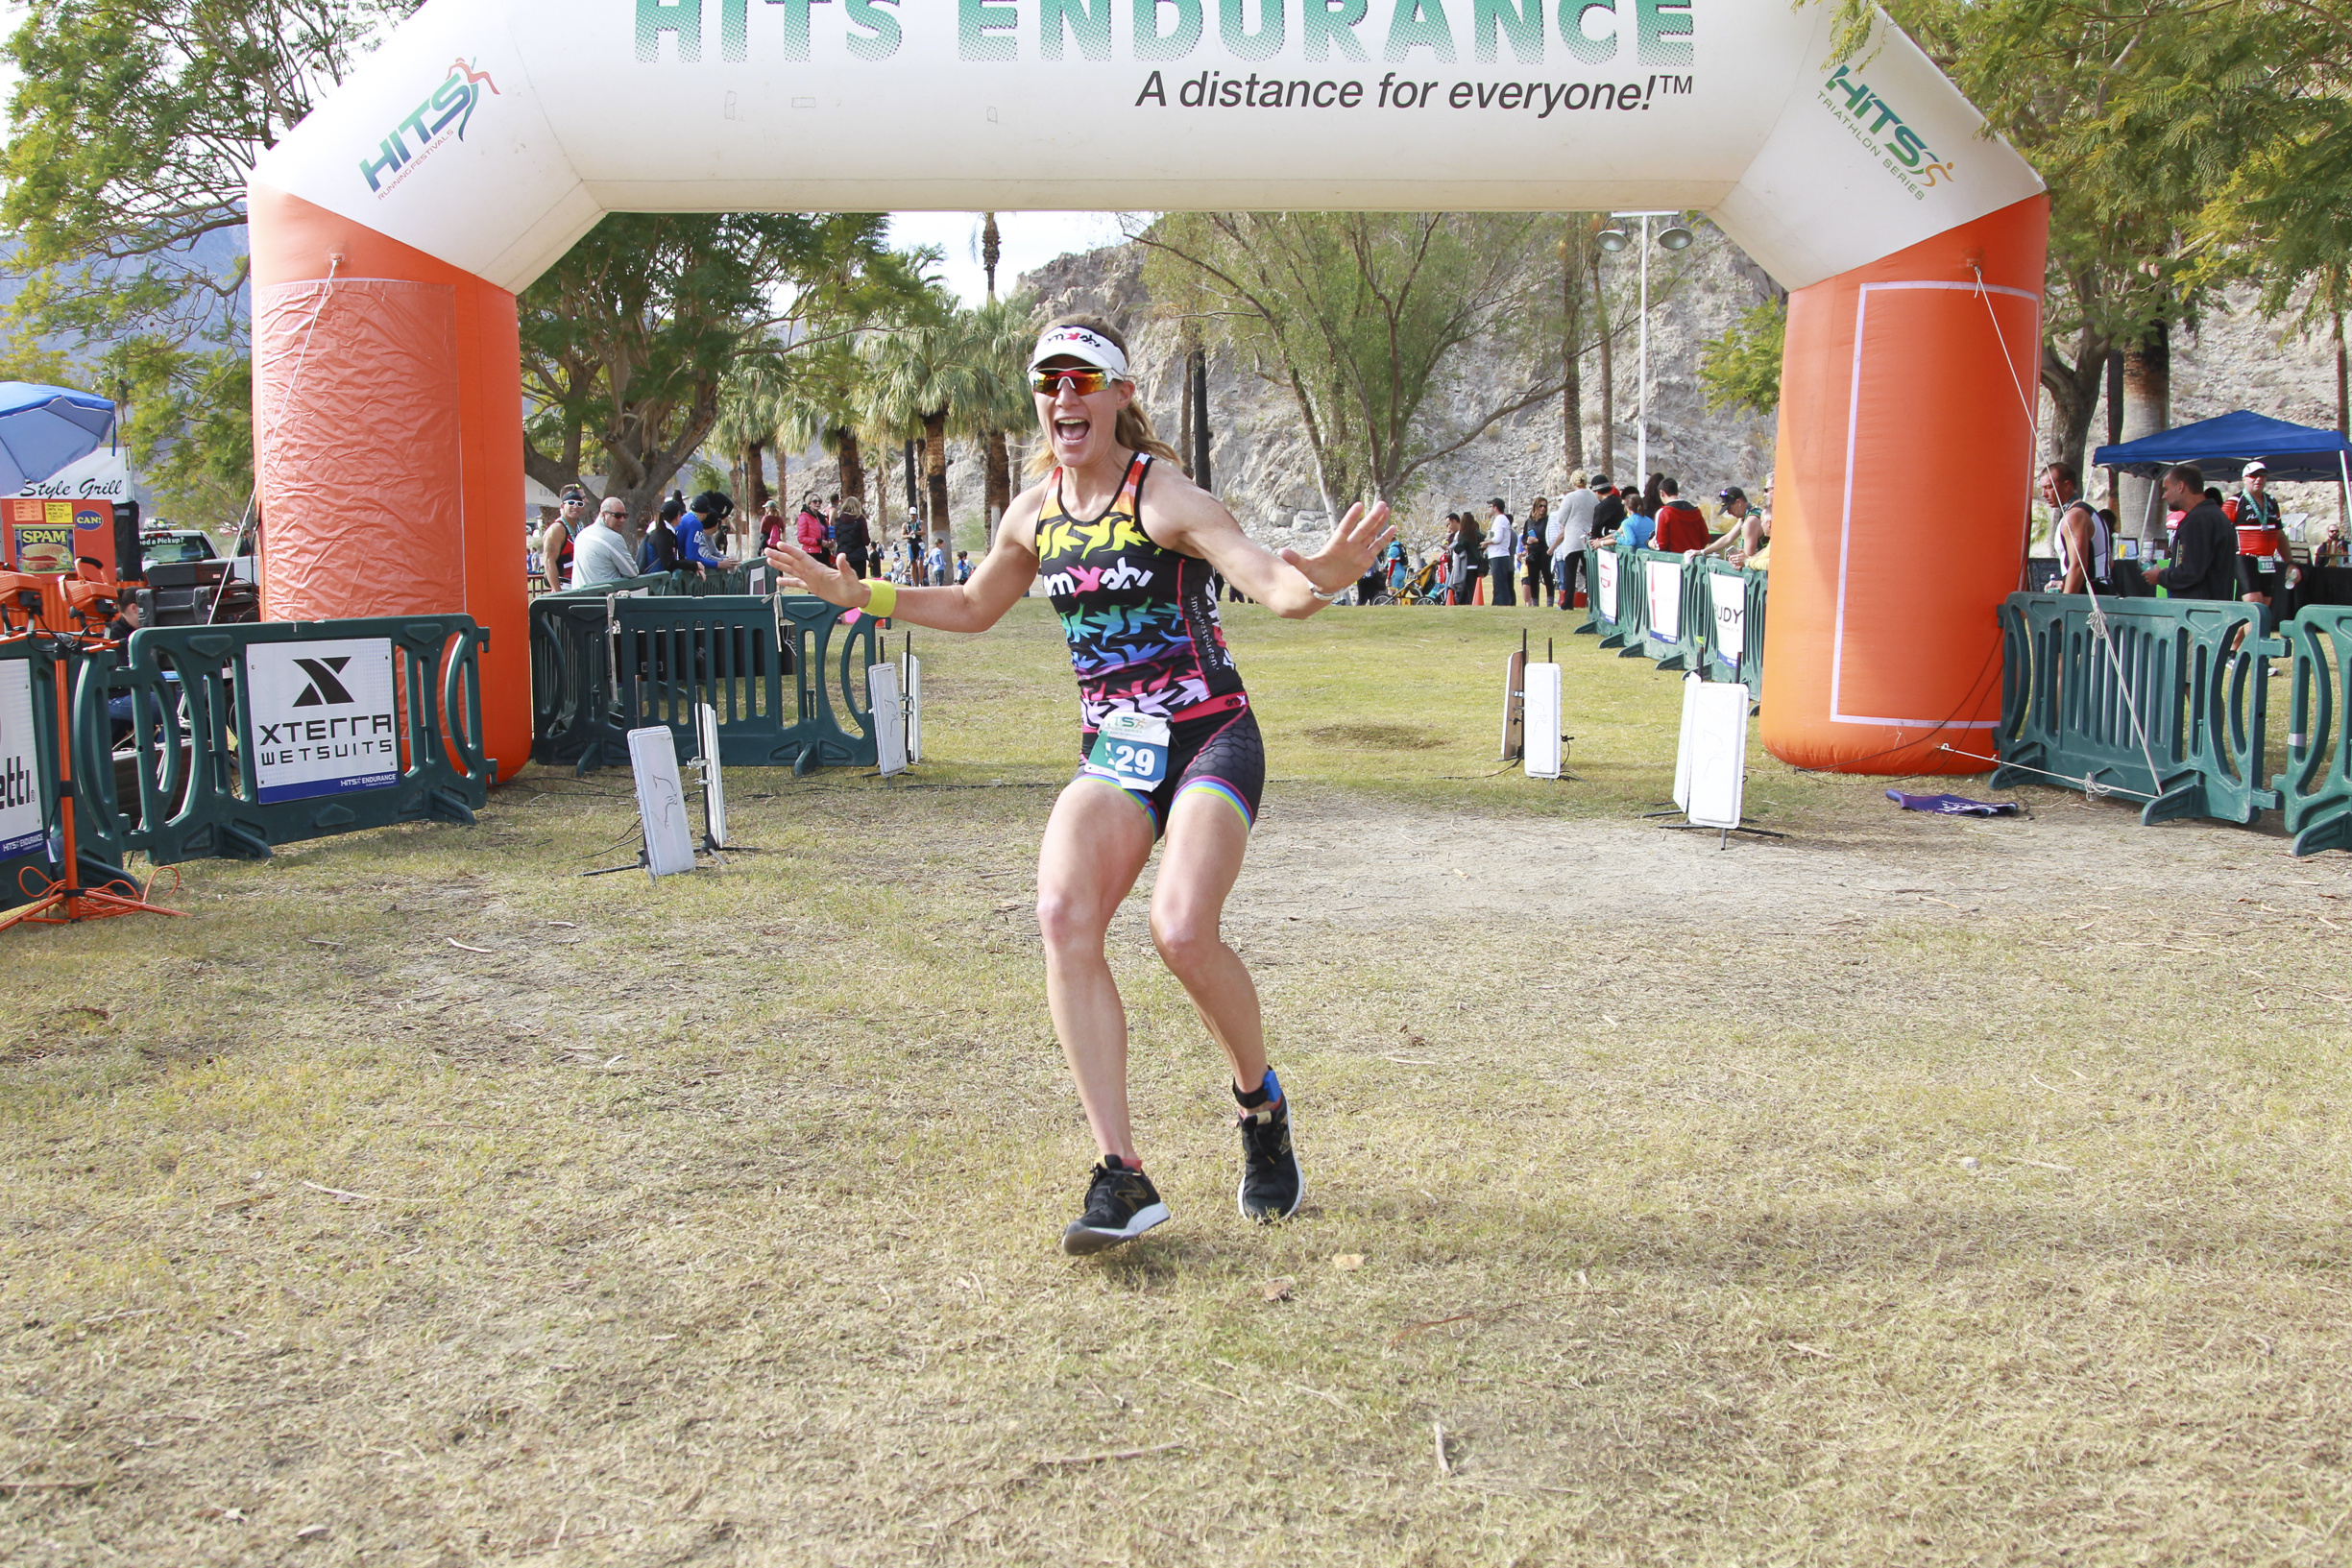 """HITS Olympic Distance triathlon finish, 2015. The first race back to triathlon after a near two year break, which I raced for fun, but got me thinking, """"Maybe I'm not done, yet?"""""""